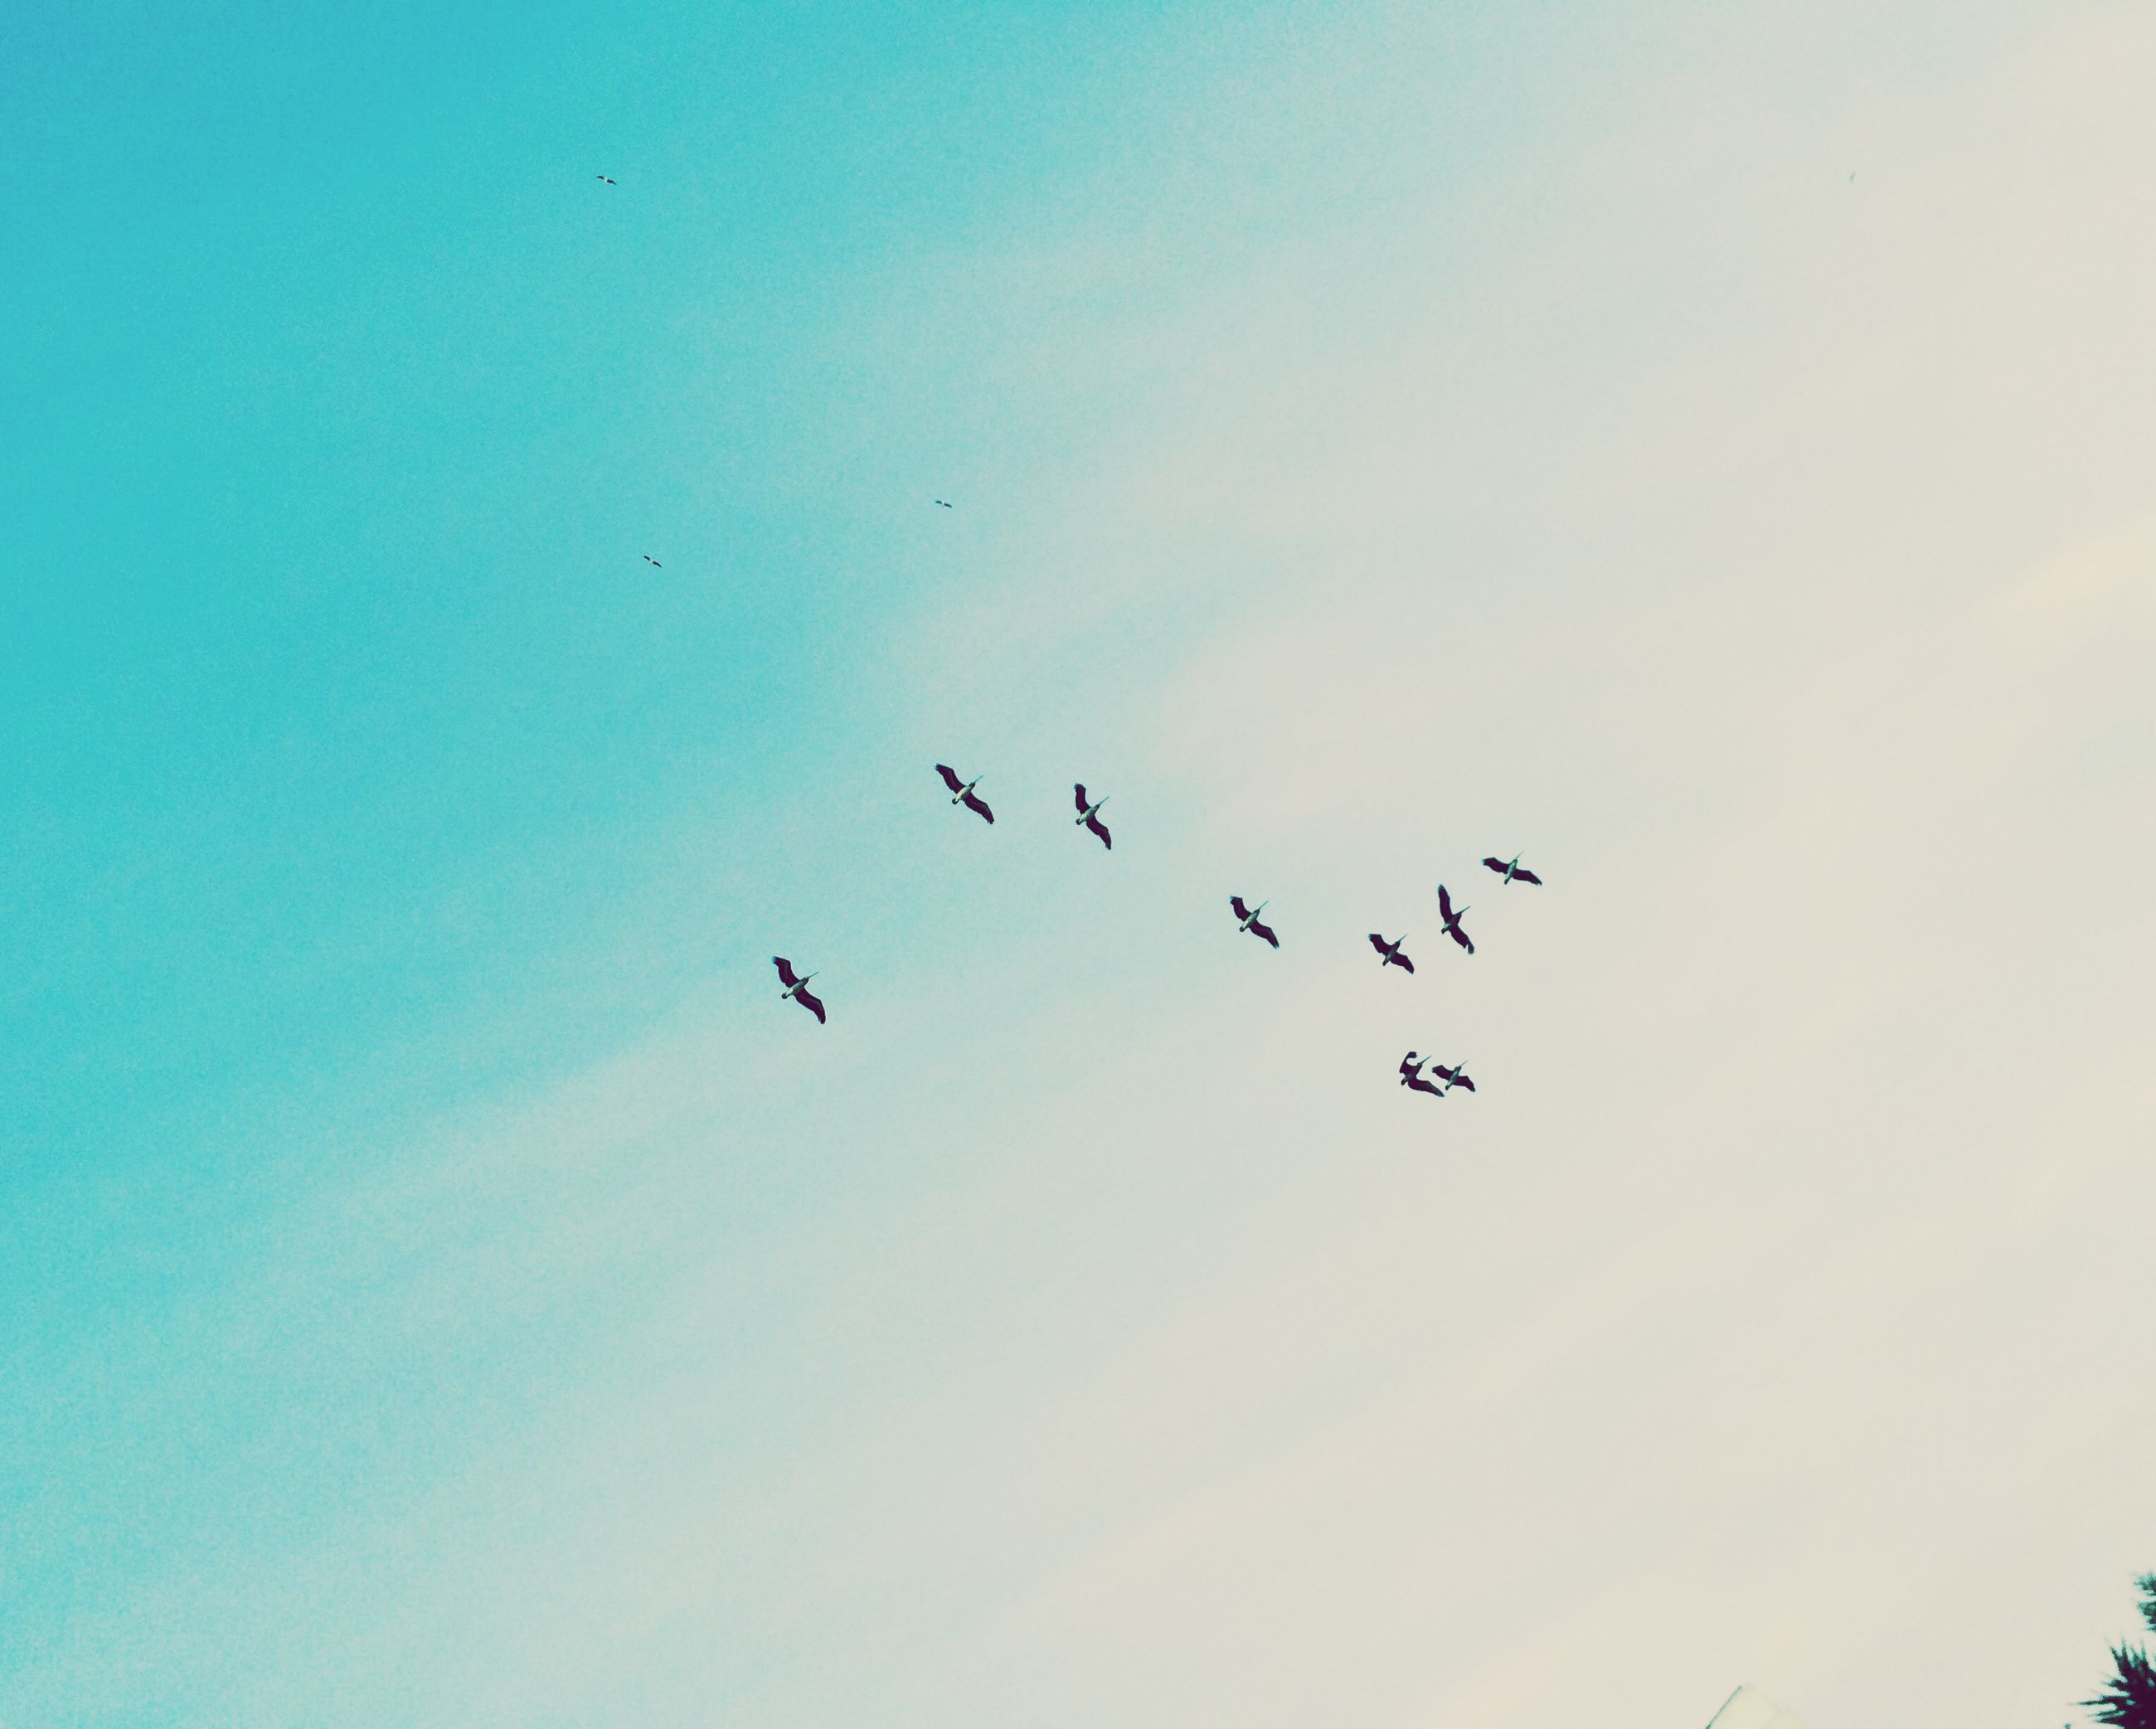 bird, flying, animal themes, low angle view, animals in the wild, wildlife, flock of birds, sky, silhouette, mid-air, nature, beauty in nature, clear sky, blue, outdoors, no people, copy space, scenics, tranquility